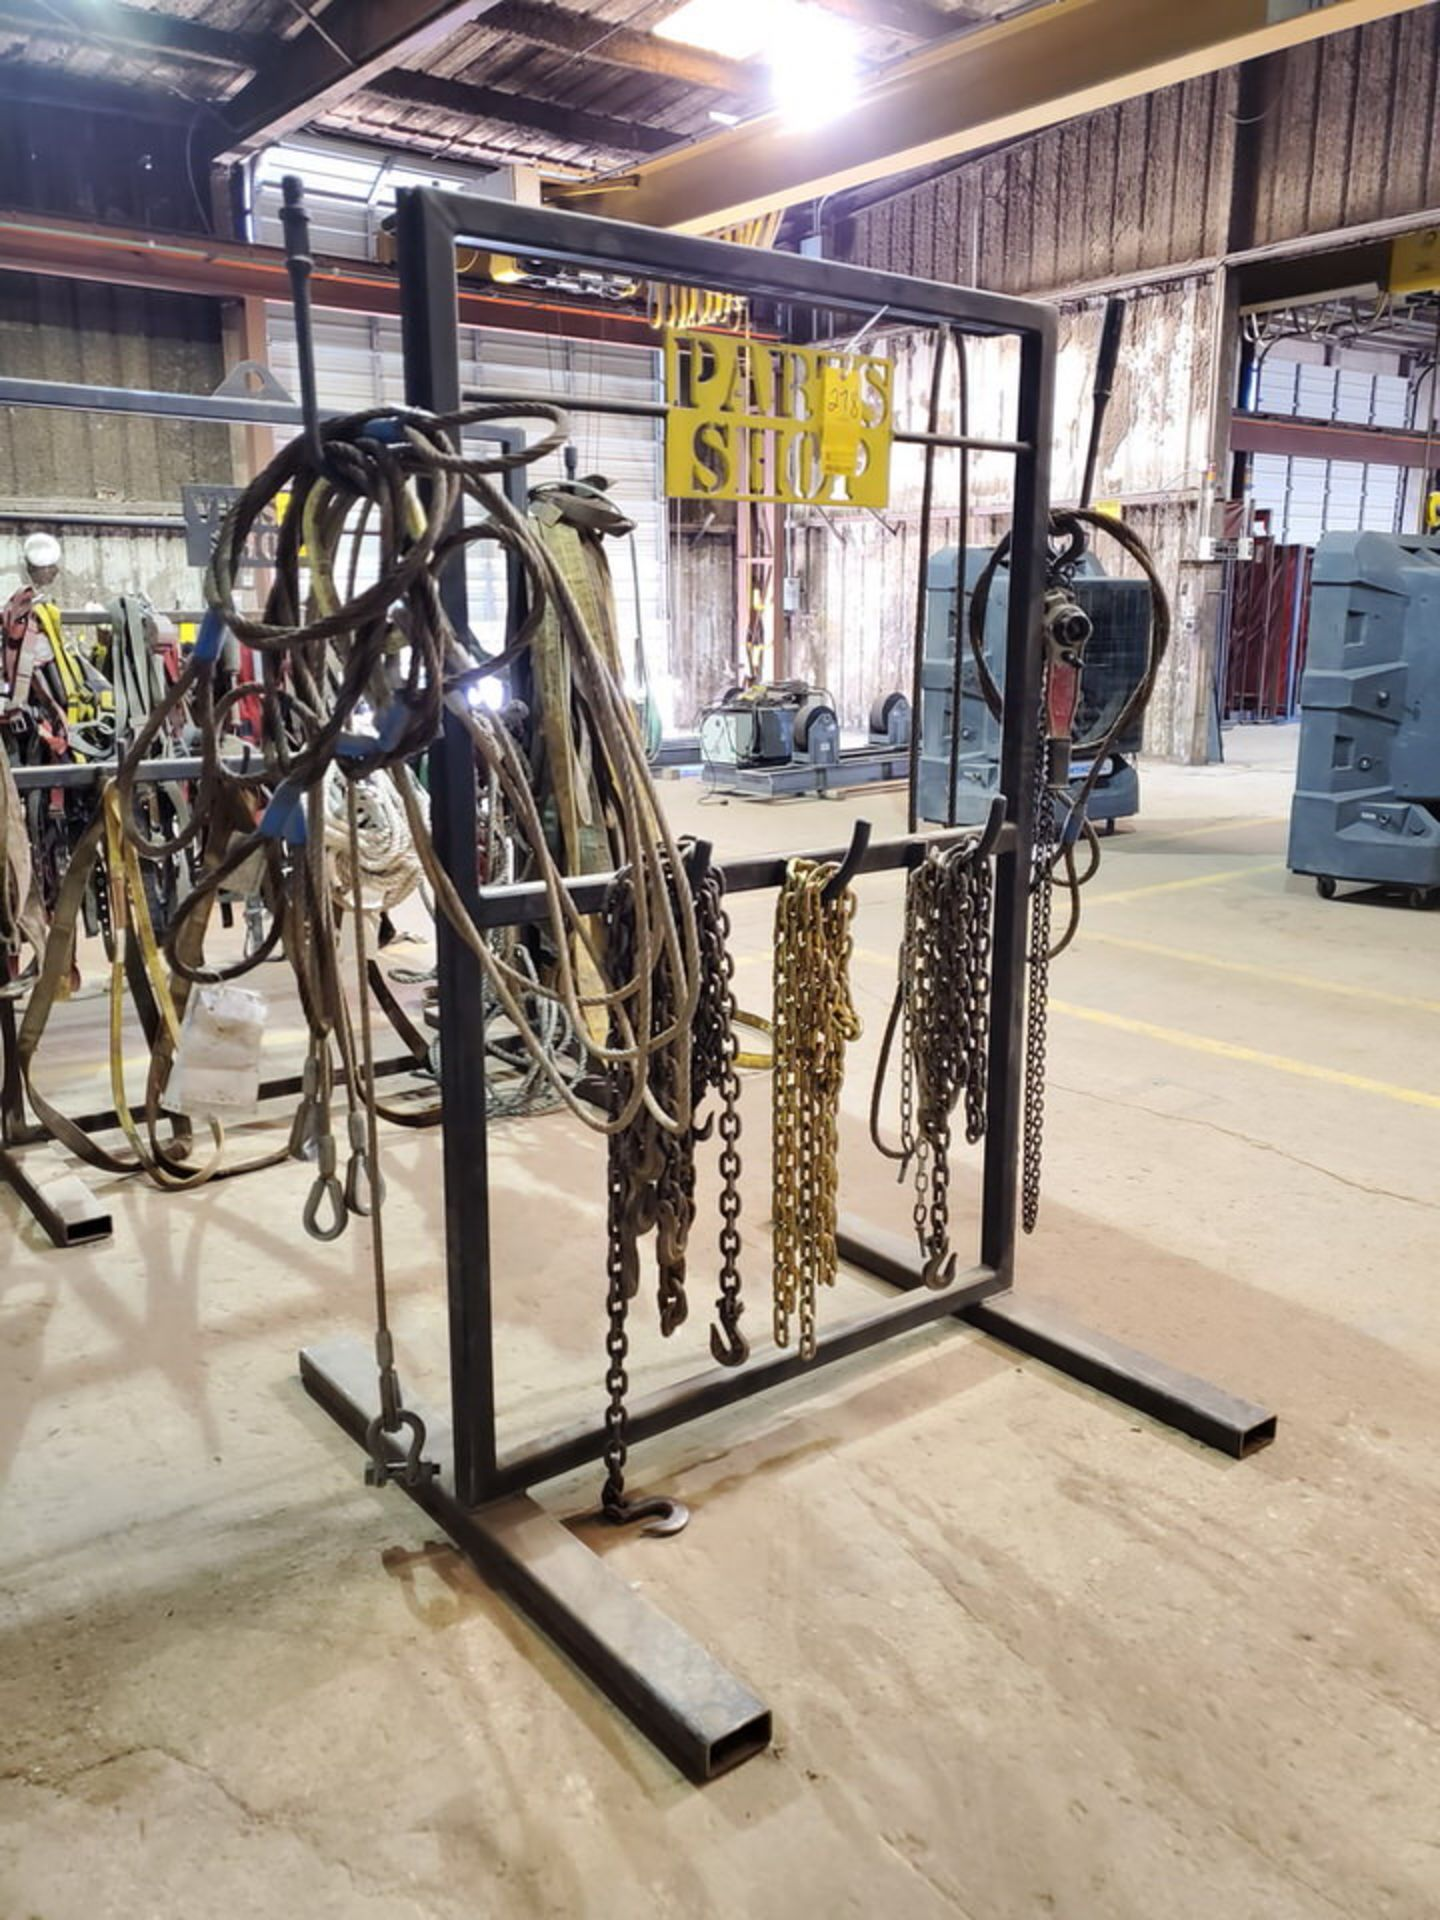 Assorted Lifting Stl Slings & Chains W/ Rack - Image 3 of 7